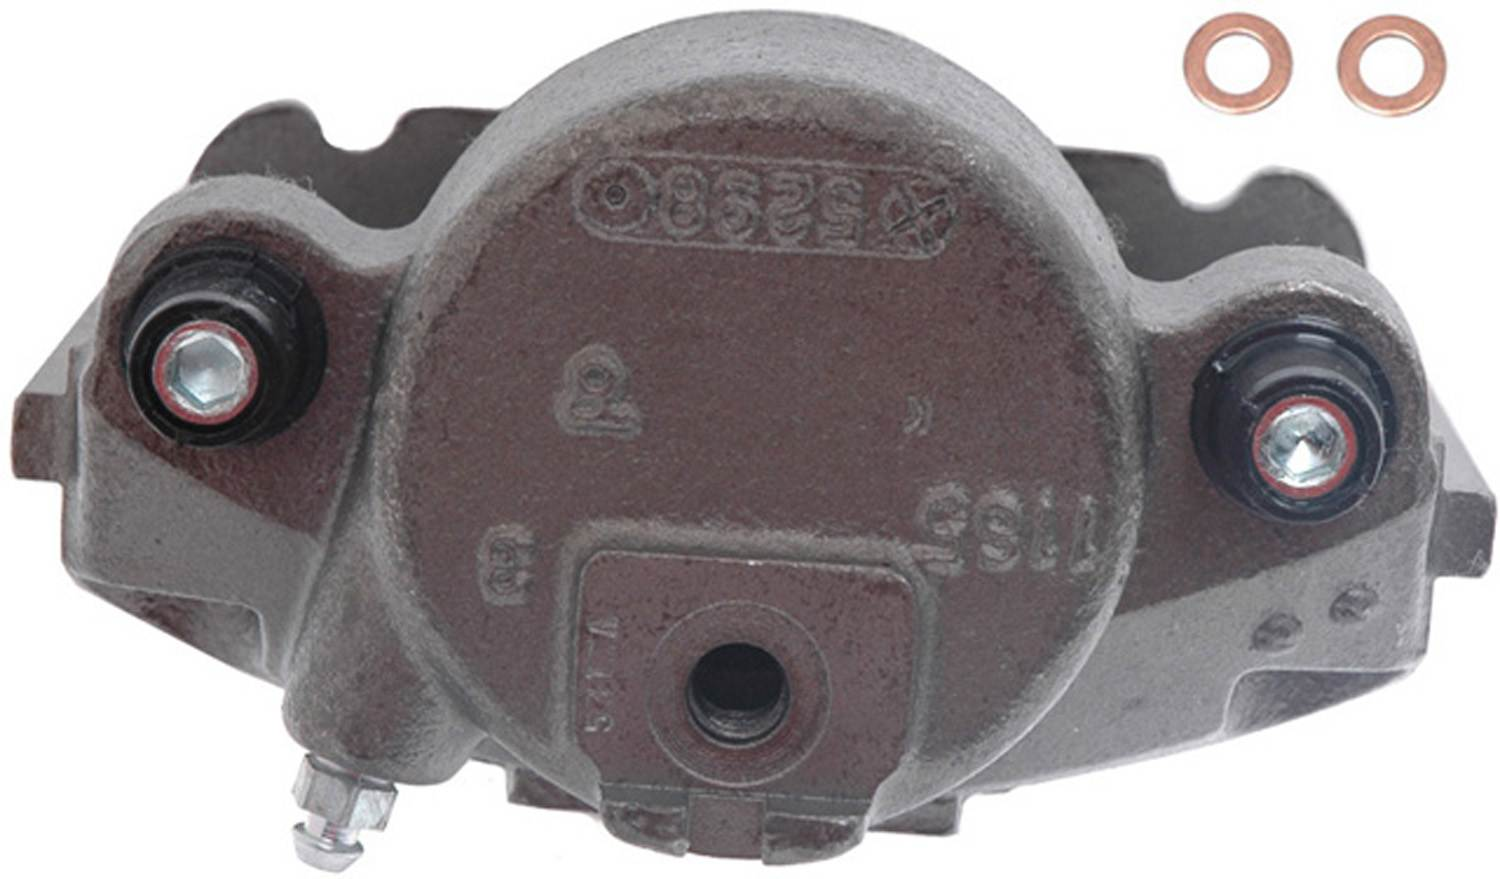 ACDELCO PROFESSIONAL BRAKES - Reman Friction Ready Non-Coated Disc Brake Caliper - ADU 18FR1086